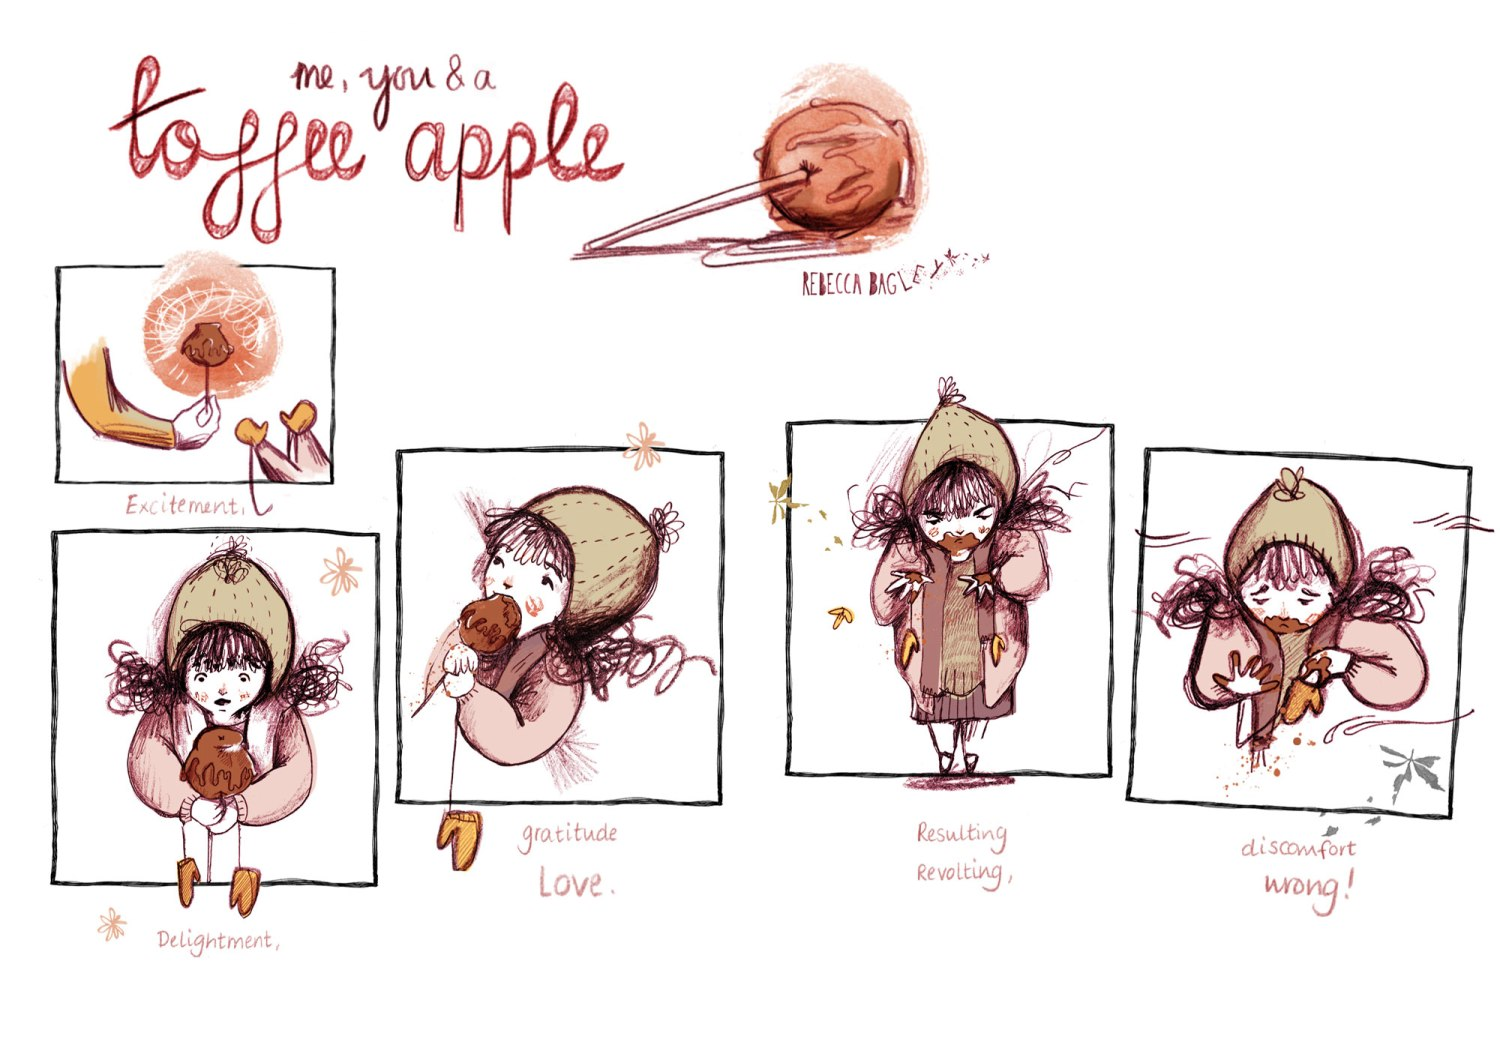 Toffee Apple Pt 1